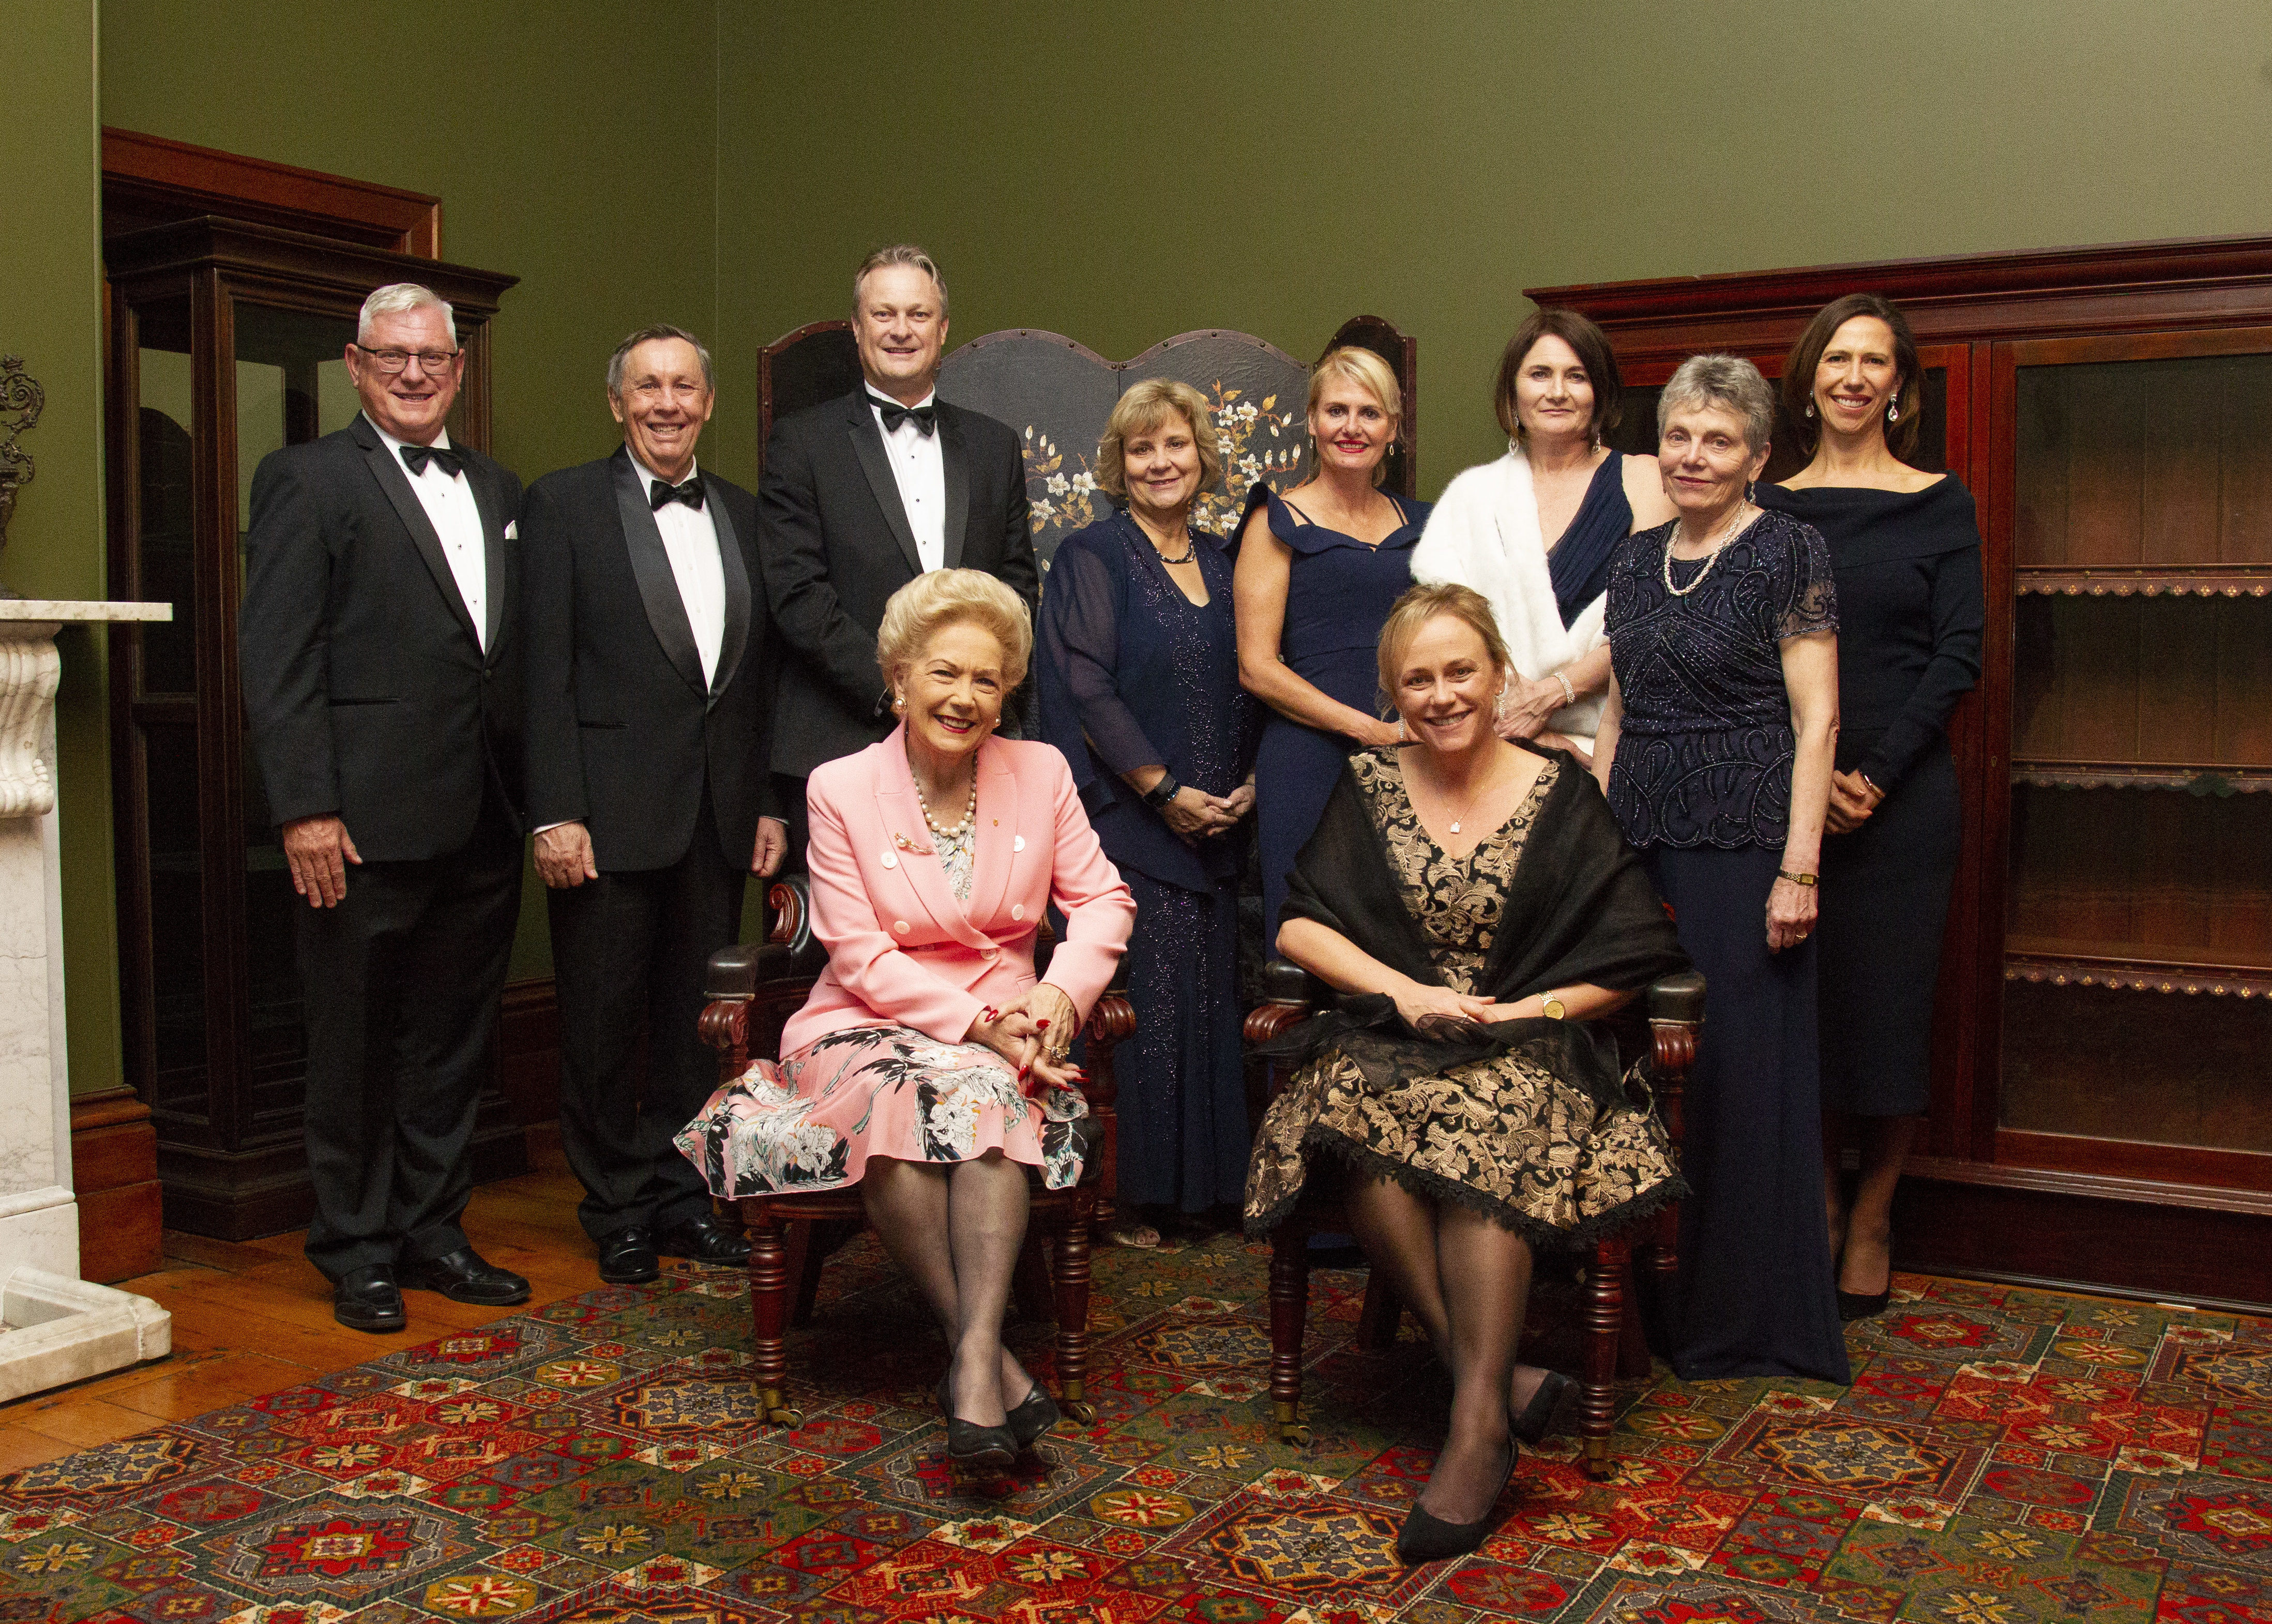 Gala Dinner Continues 110 Years Celebrations